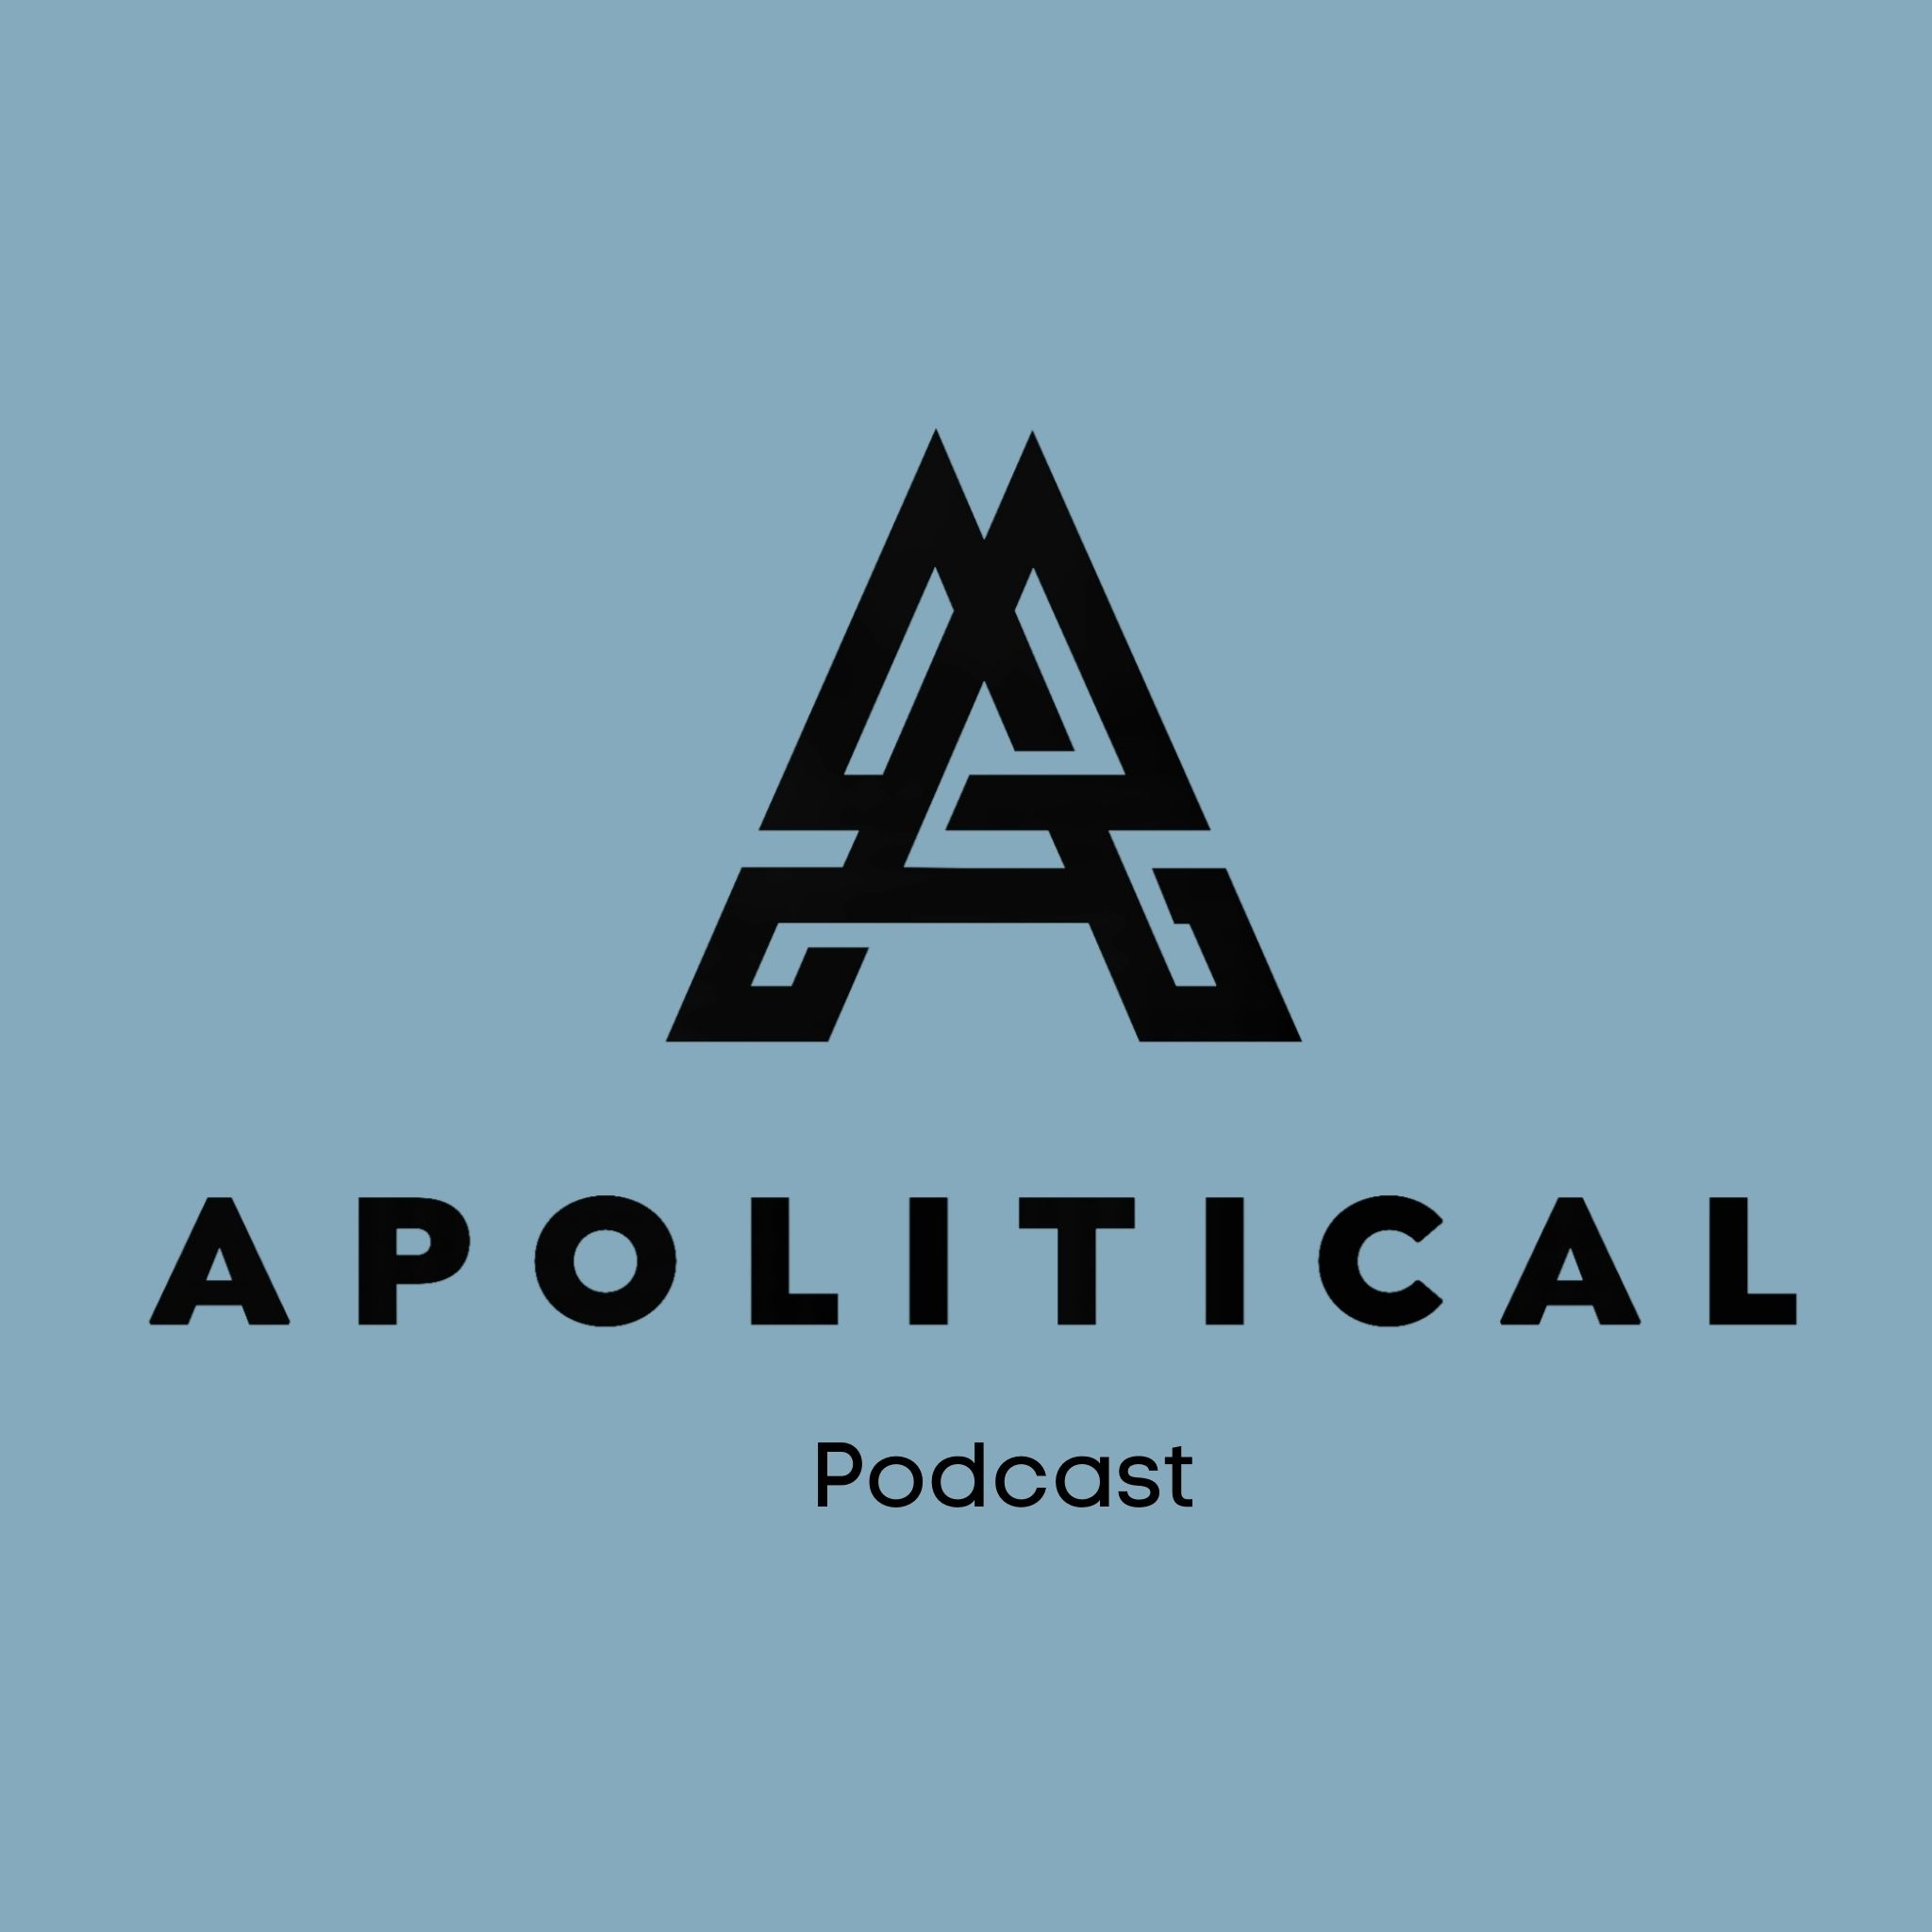 Apolitical Podcast